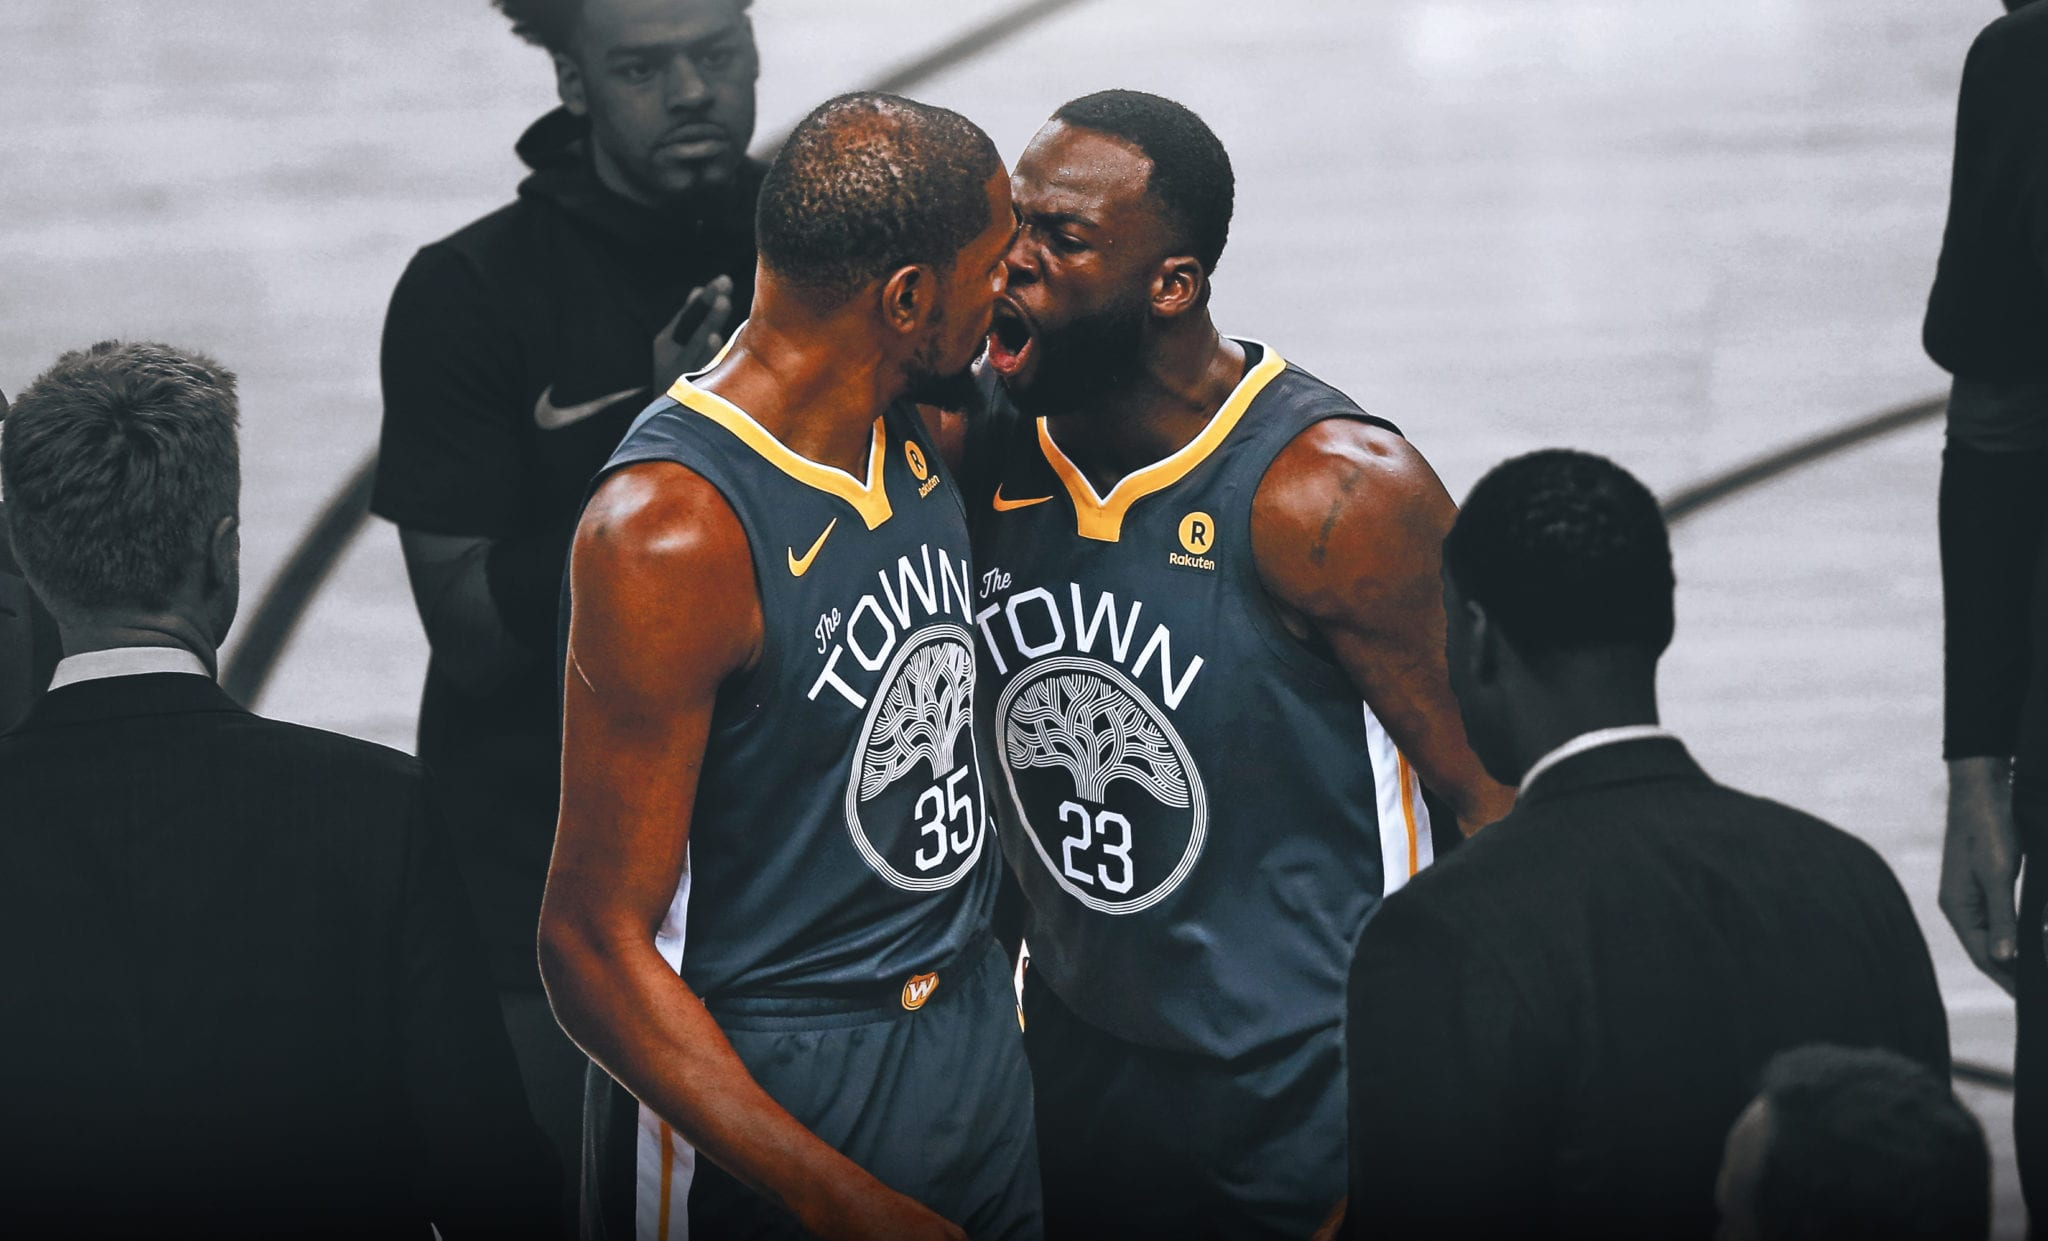 Draymond Green Opens Up About Kevin Durant Fight For The First Time